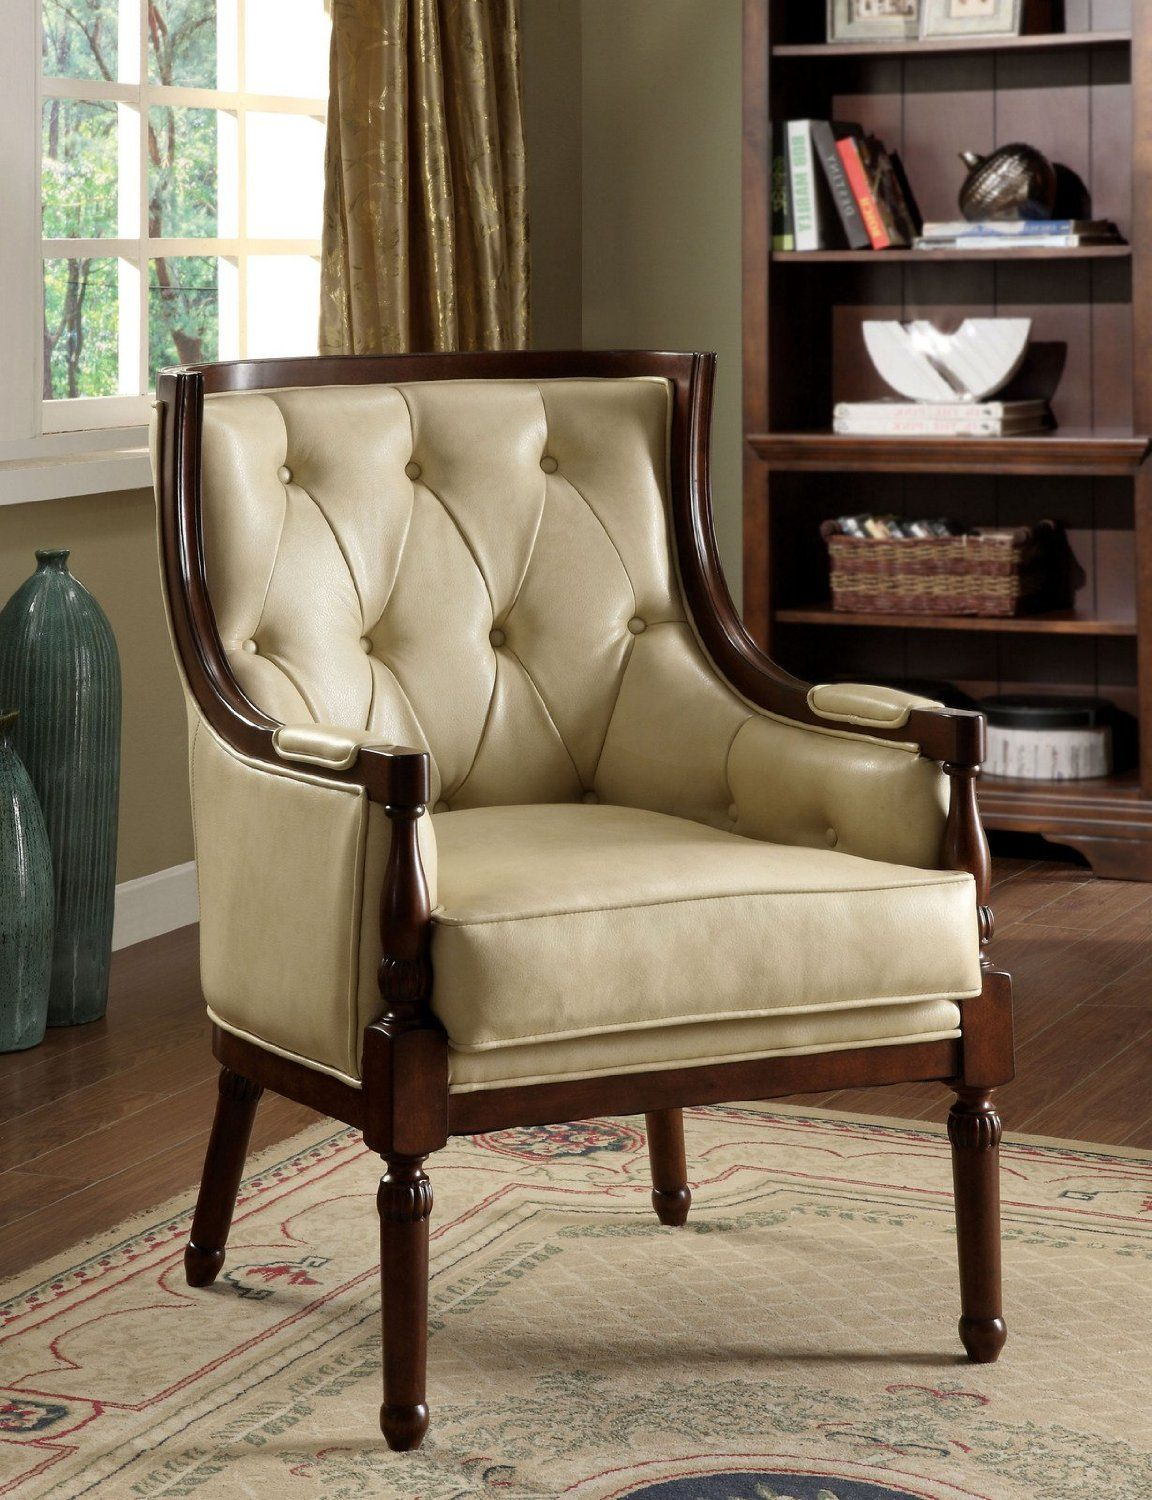 Leather accent chairs with arms - Santi English Style Tuft Faux Leather Accent Chair